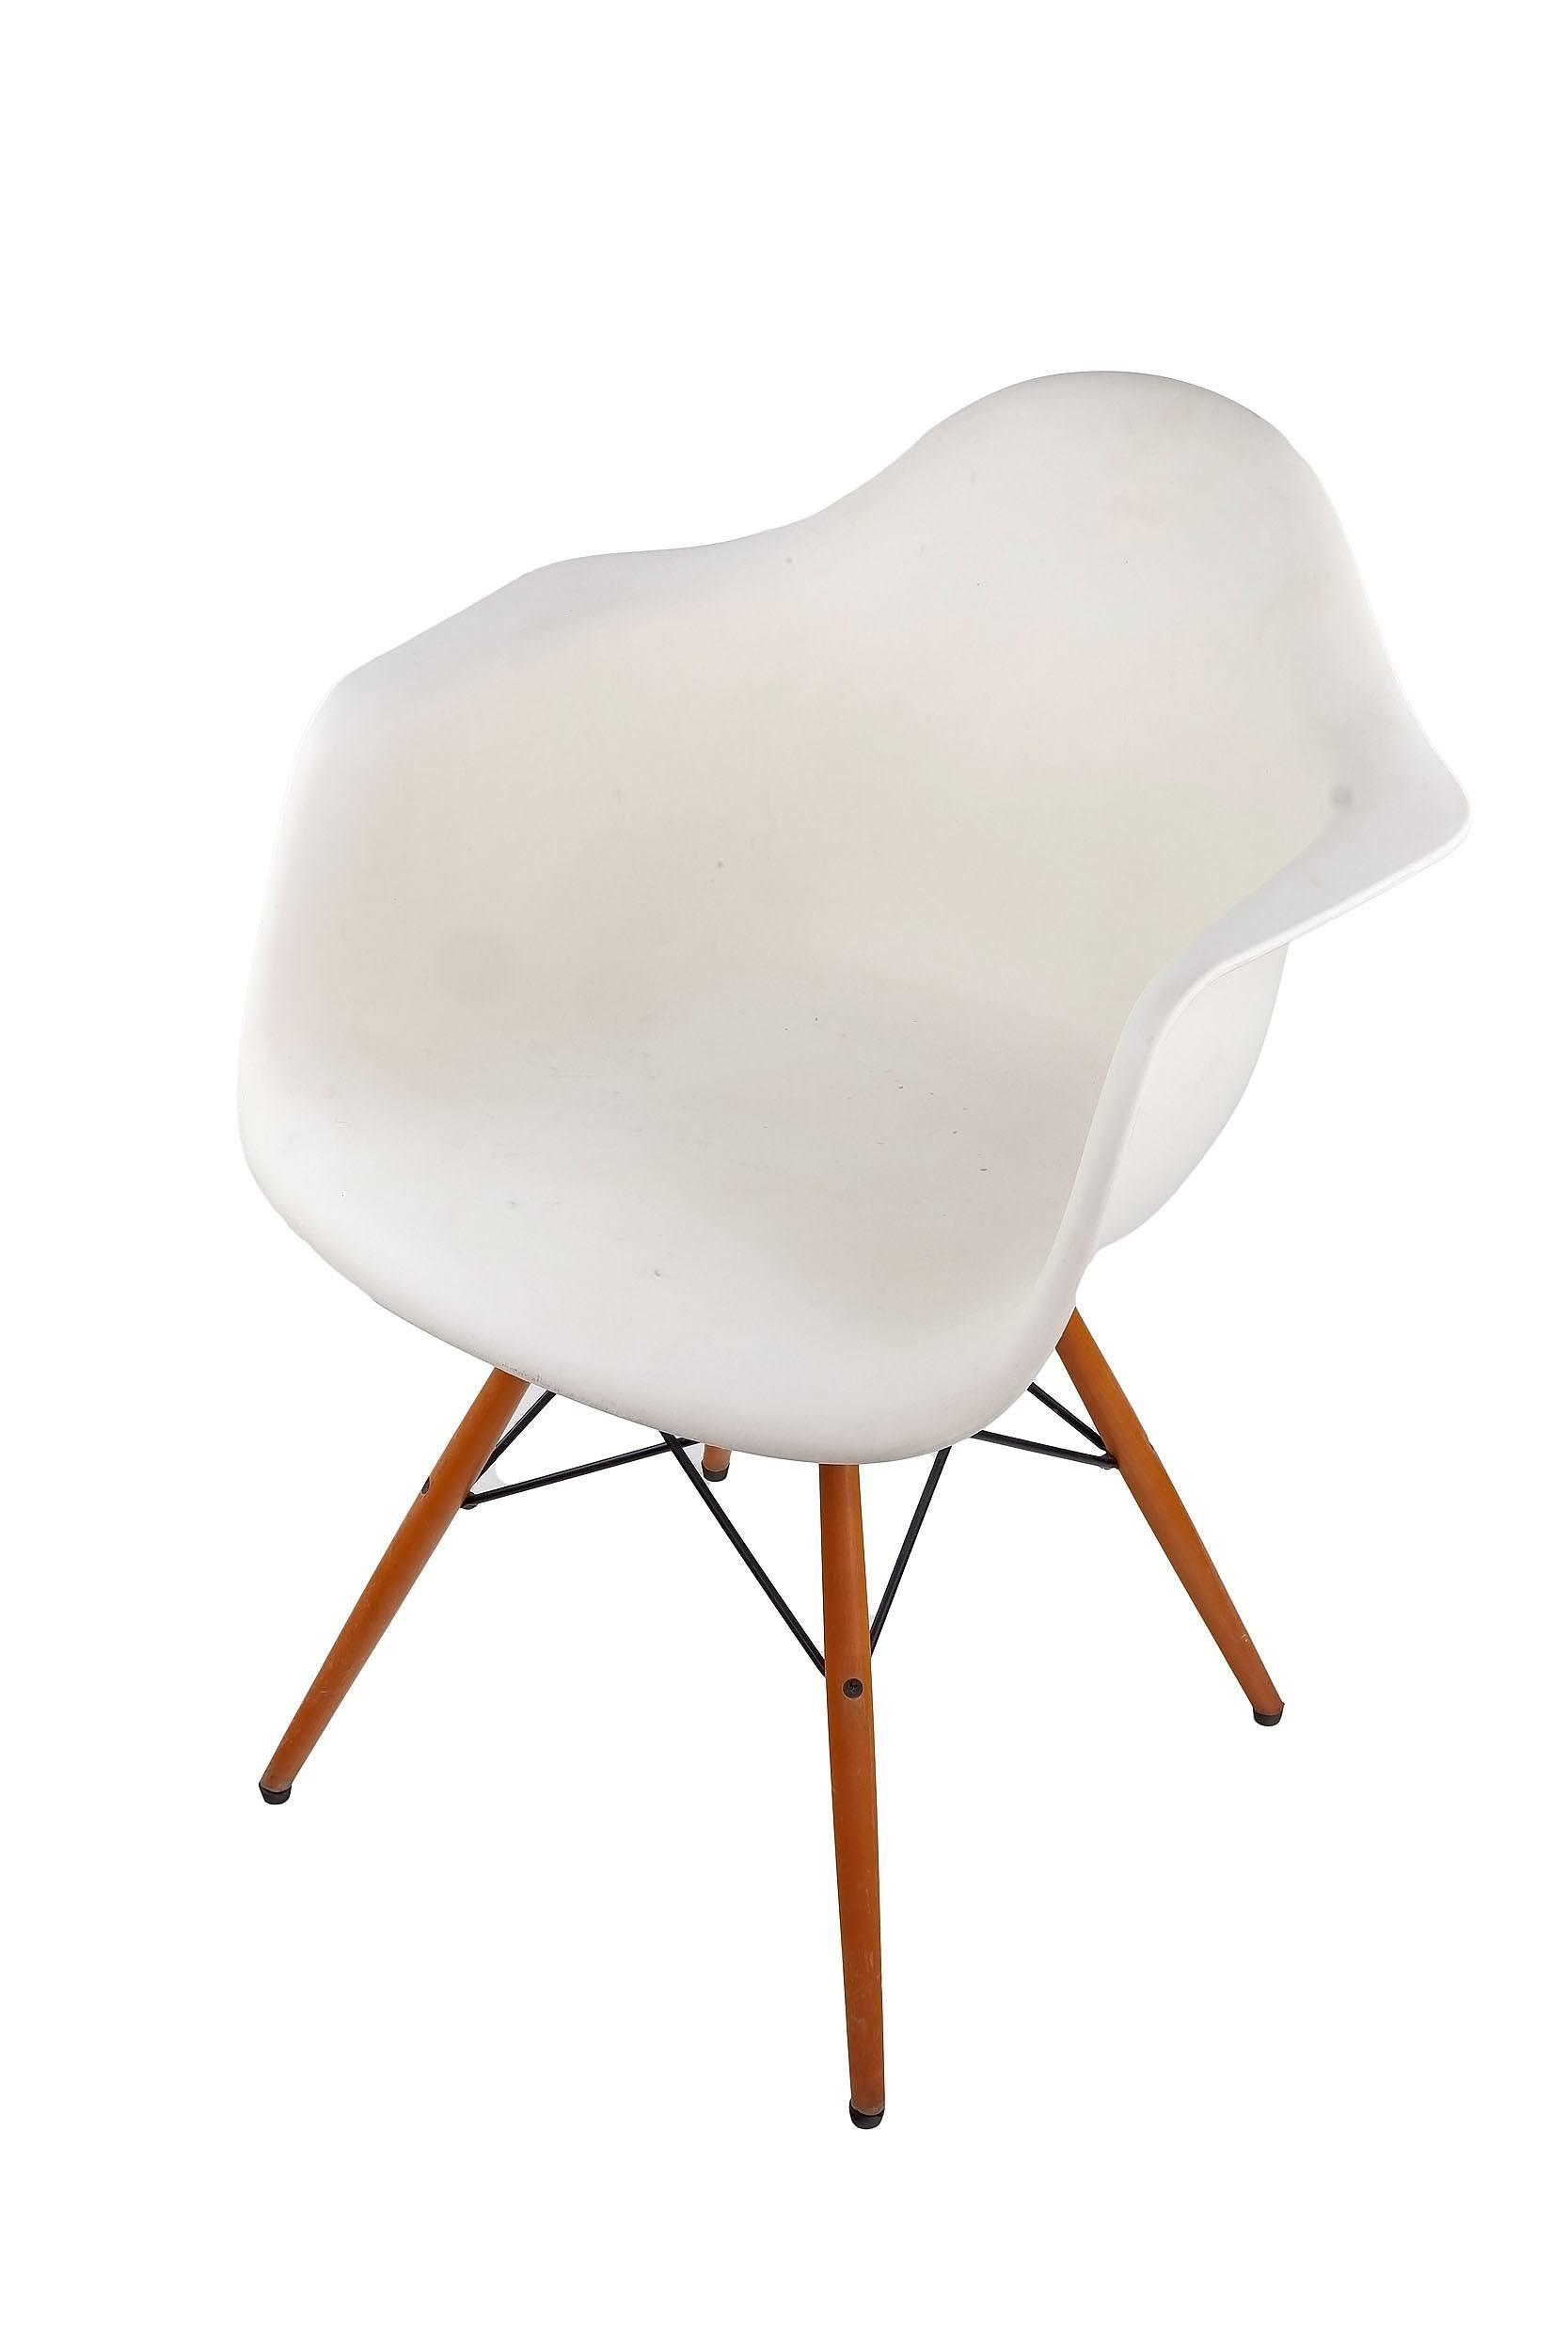 'Vitra Moulded Plastic Armchair, Designed by Charles and Ray Eames'